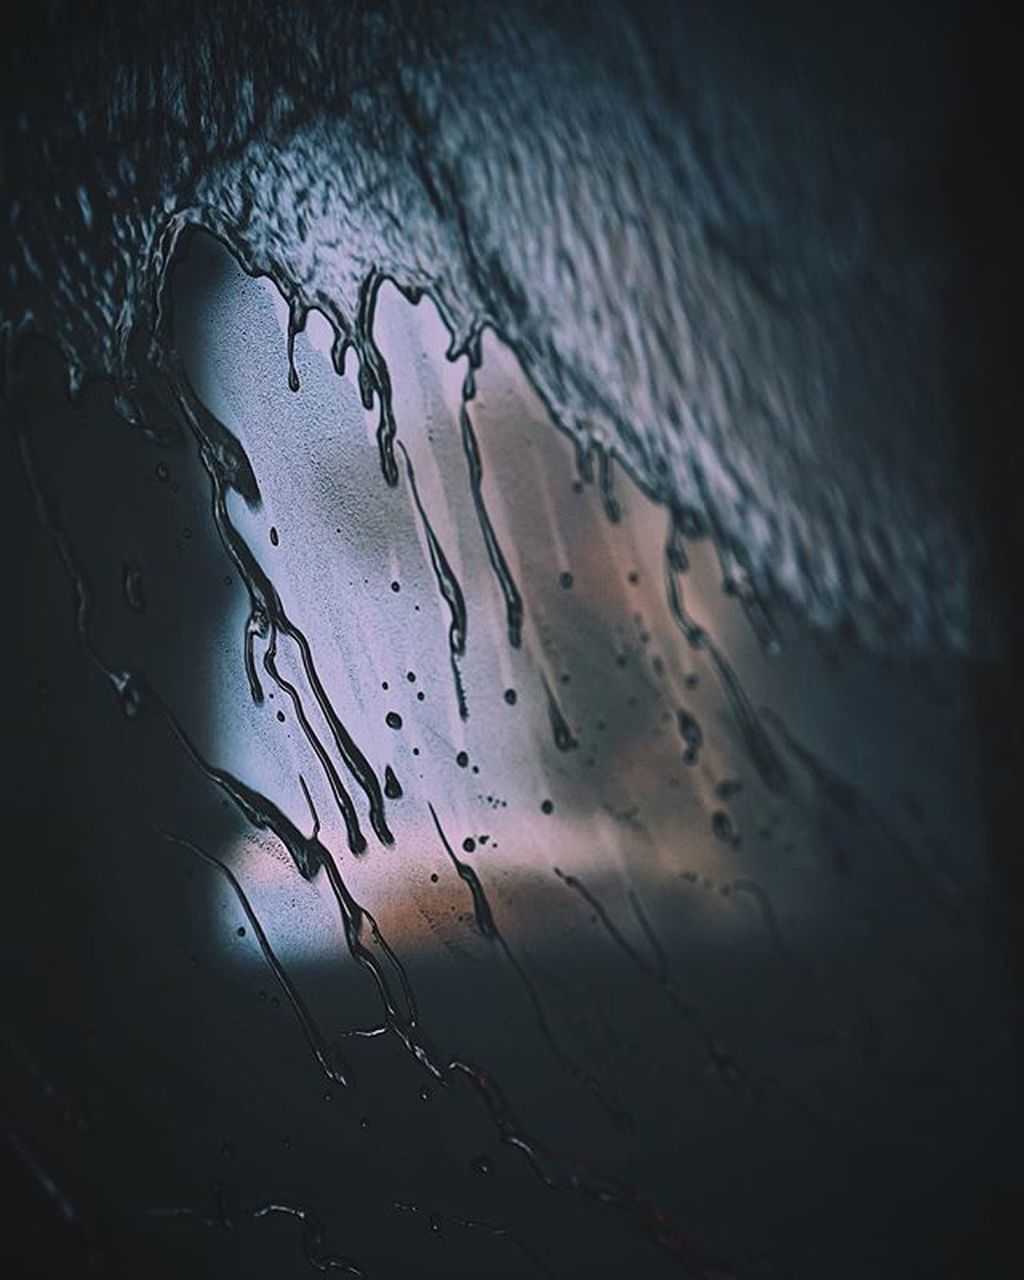 drop, wet, water, window, close-up, raindrop, no people, indoors, day, nature, dripping, sky